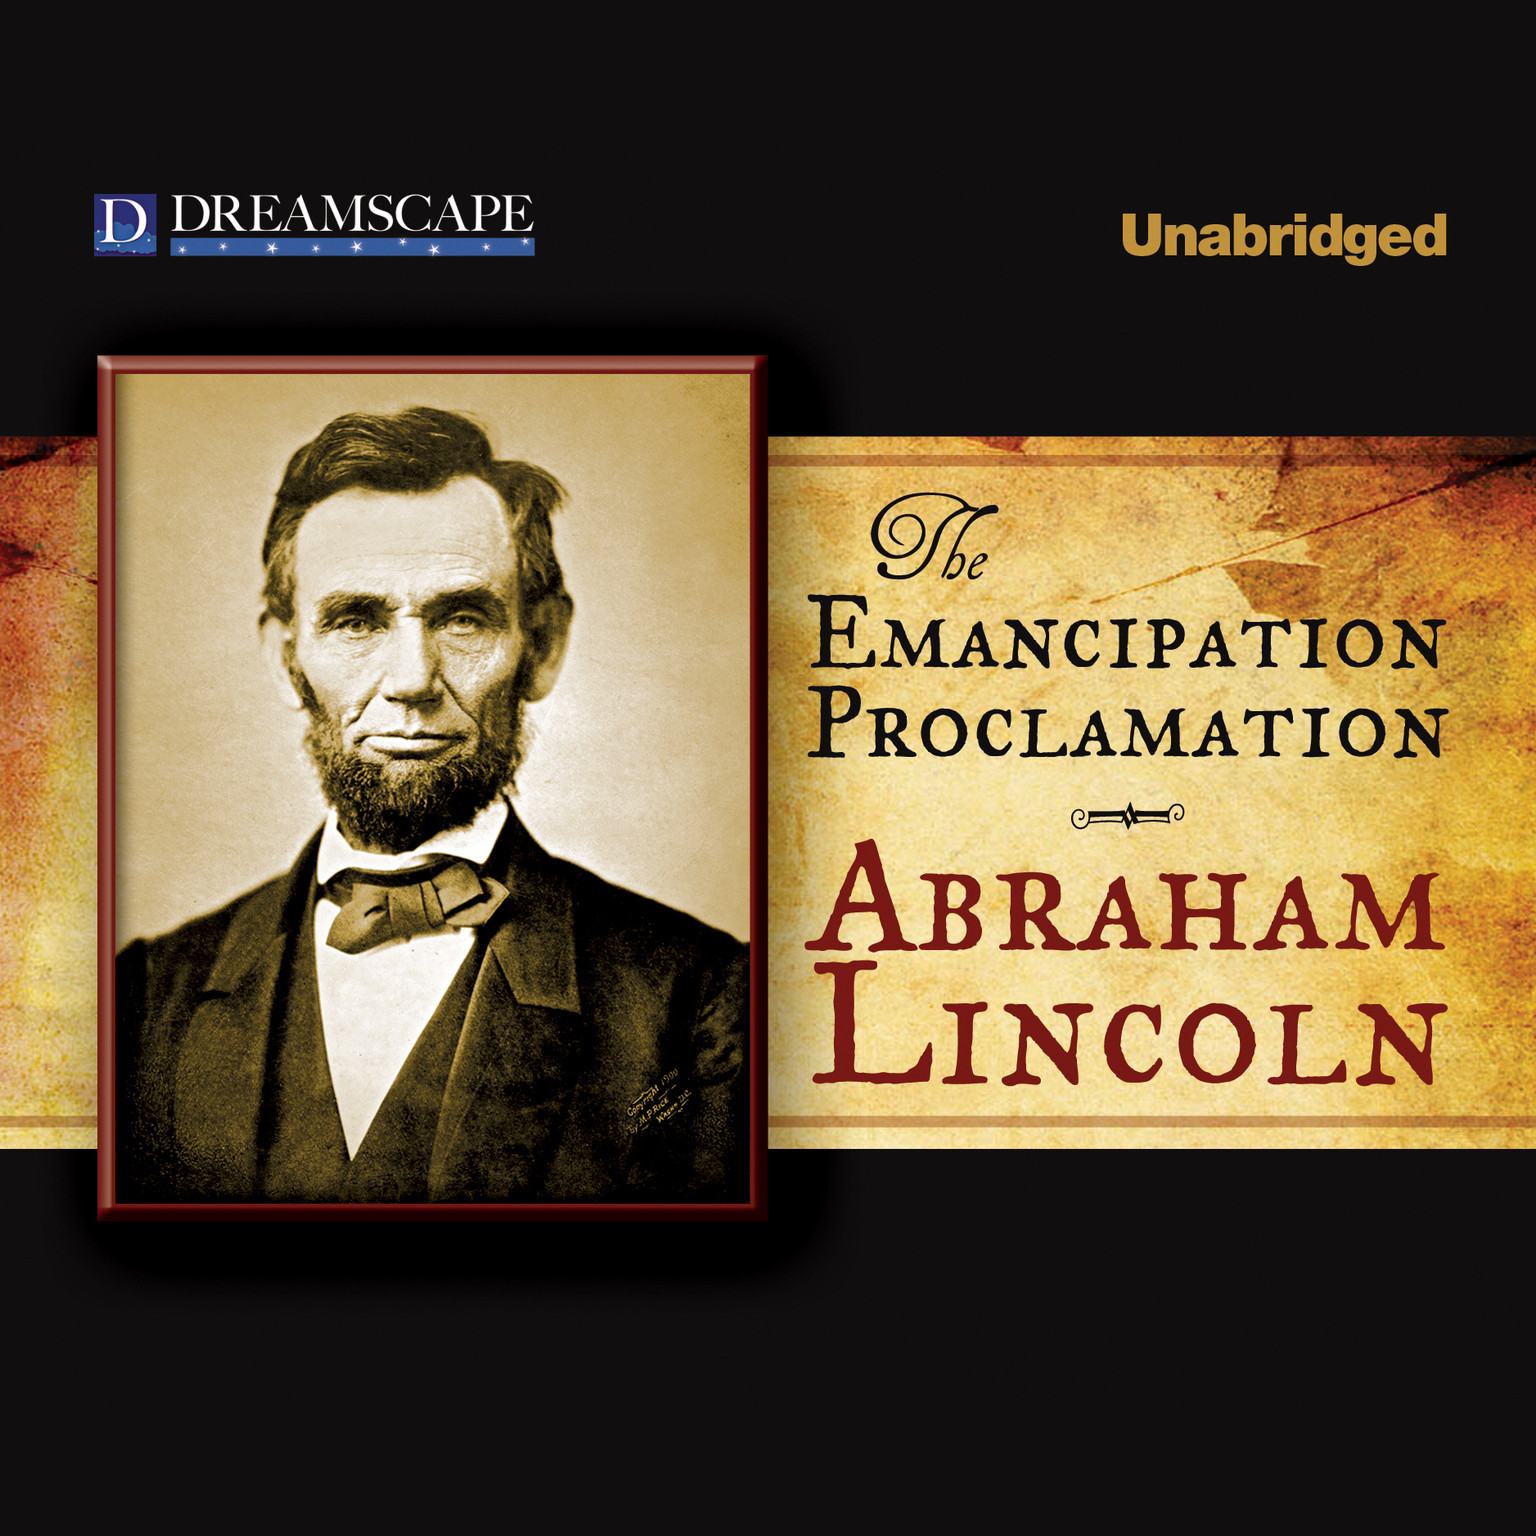 a history of the emancipation proclamation by abraham lincoln in the southern states Start studying lincoln's emancipation proclamation, and the abraham lincoln issued the proclamation when the southern states did not yield, lincoln then.